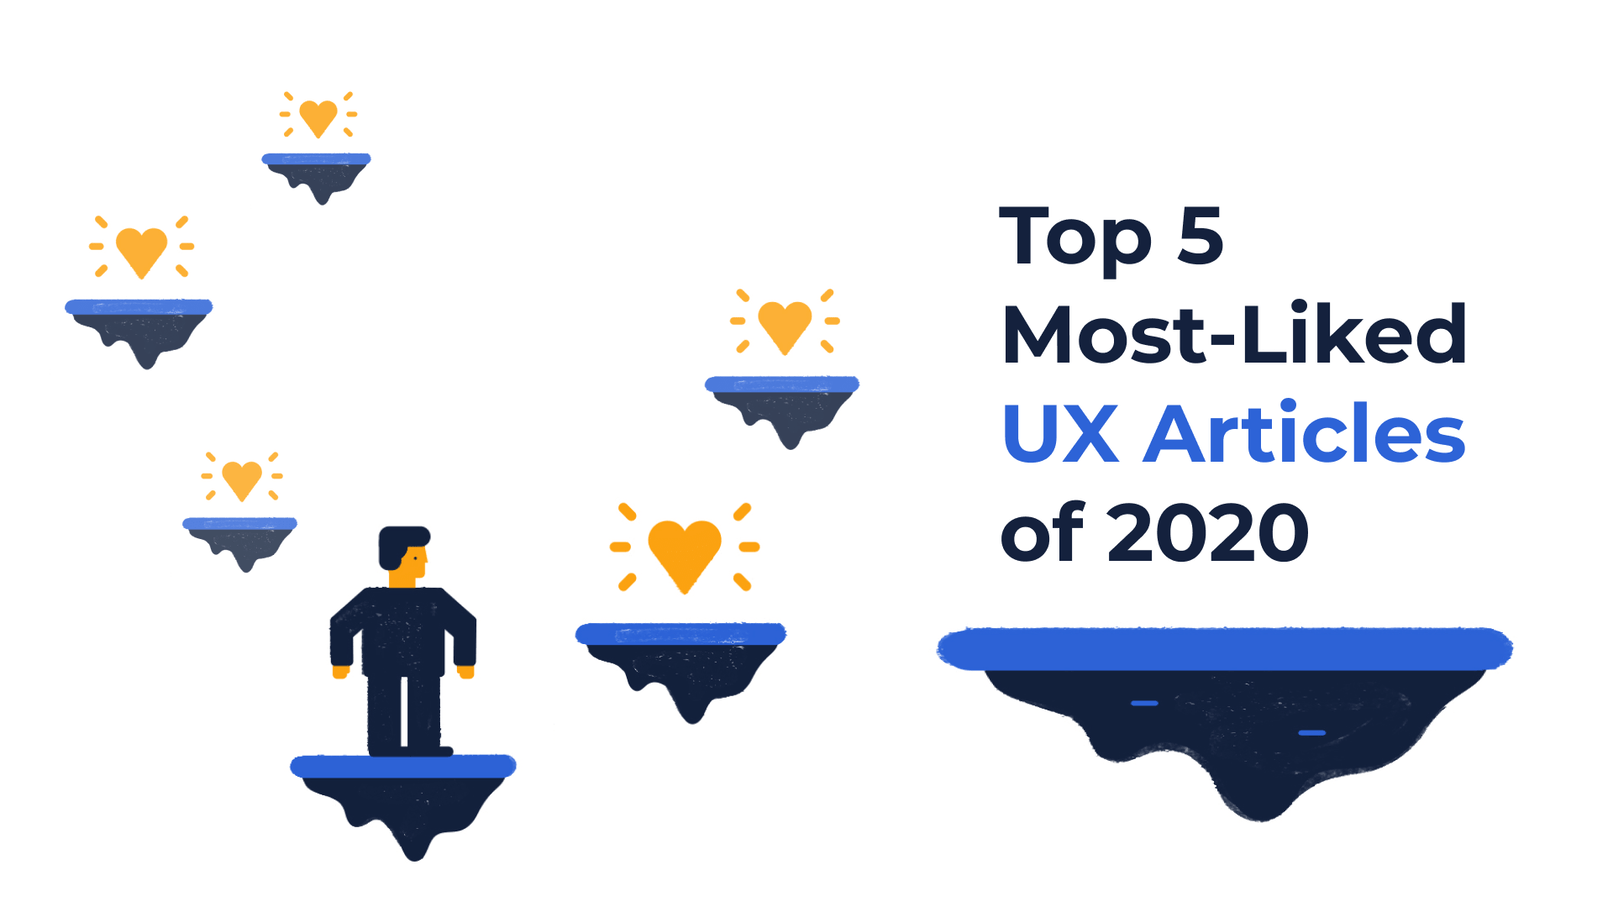 Top UX Articles You Liked Most in 2020